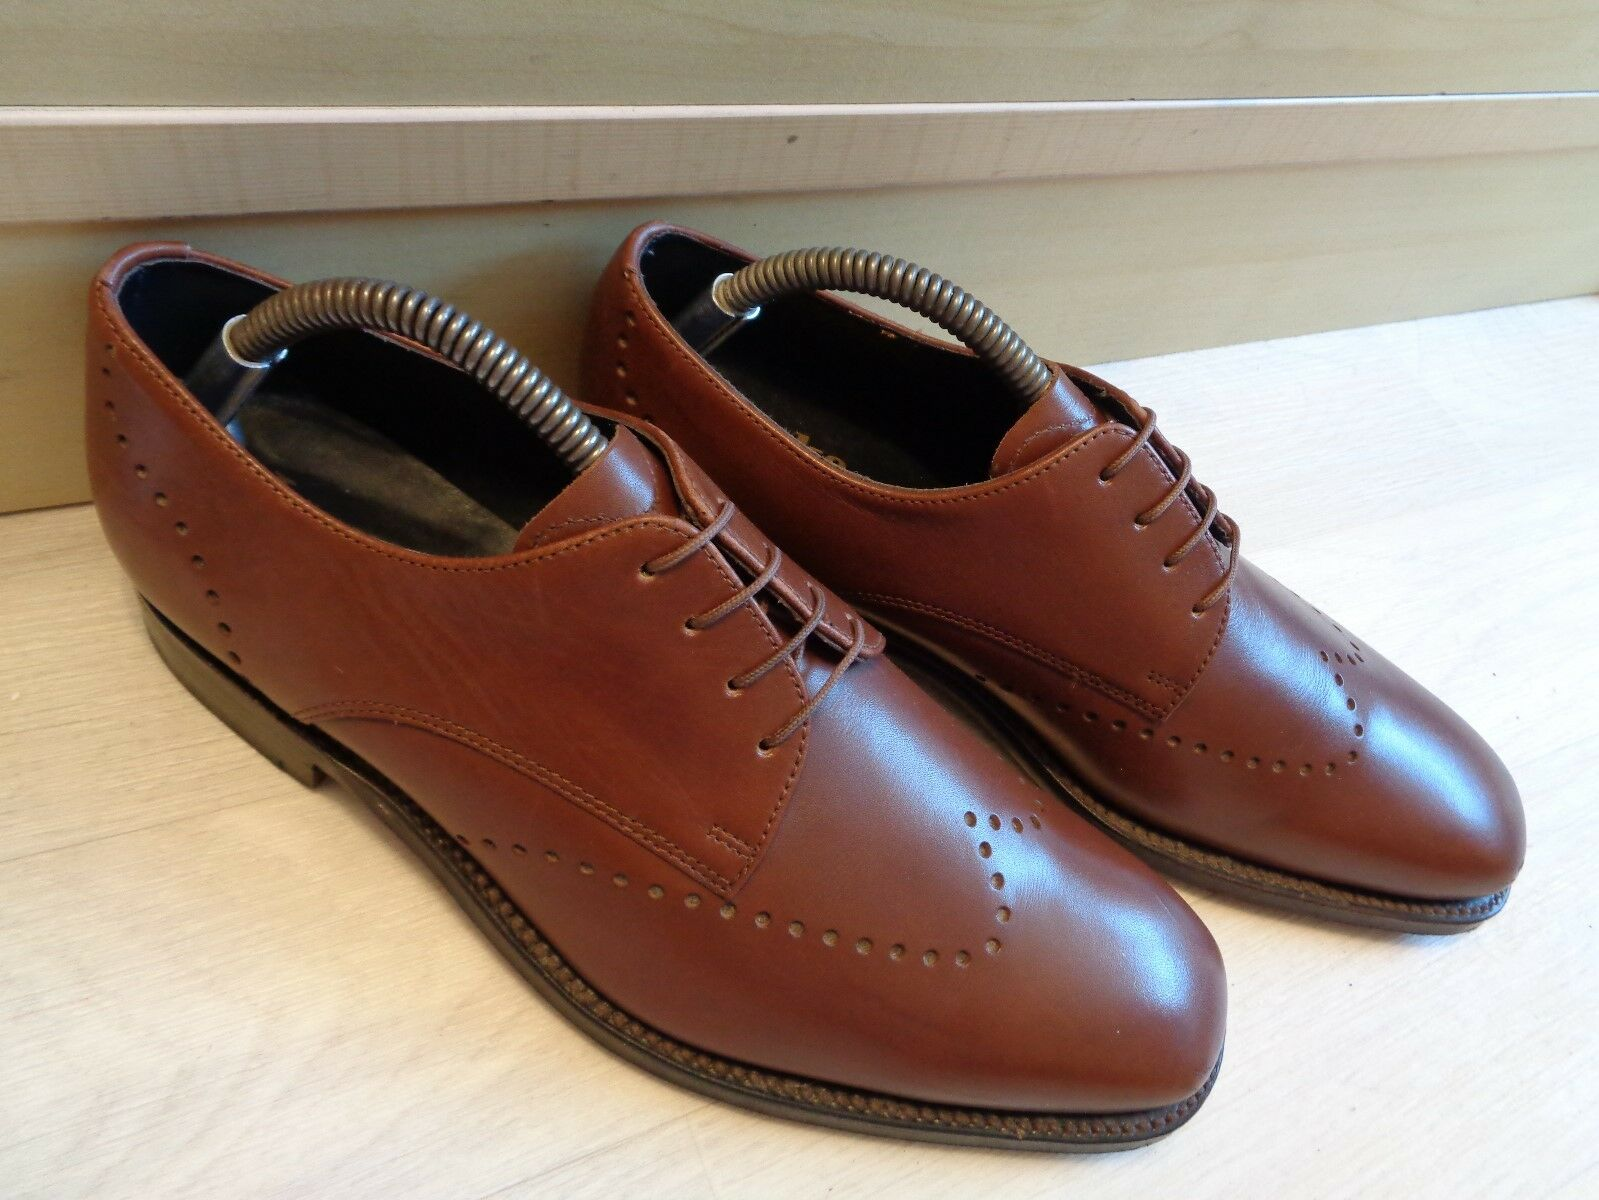 Vtg Loake England full leather derby UK 7 41 brown Goodyear welt wingtip lace up